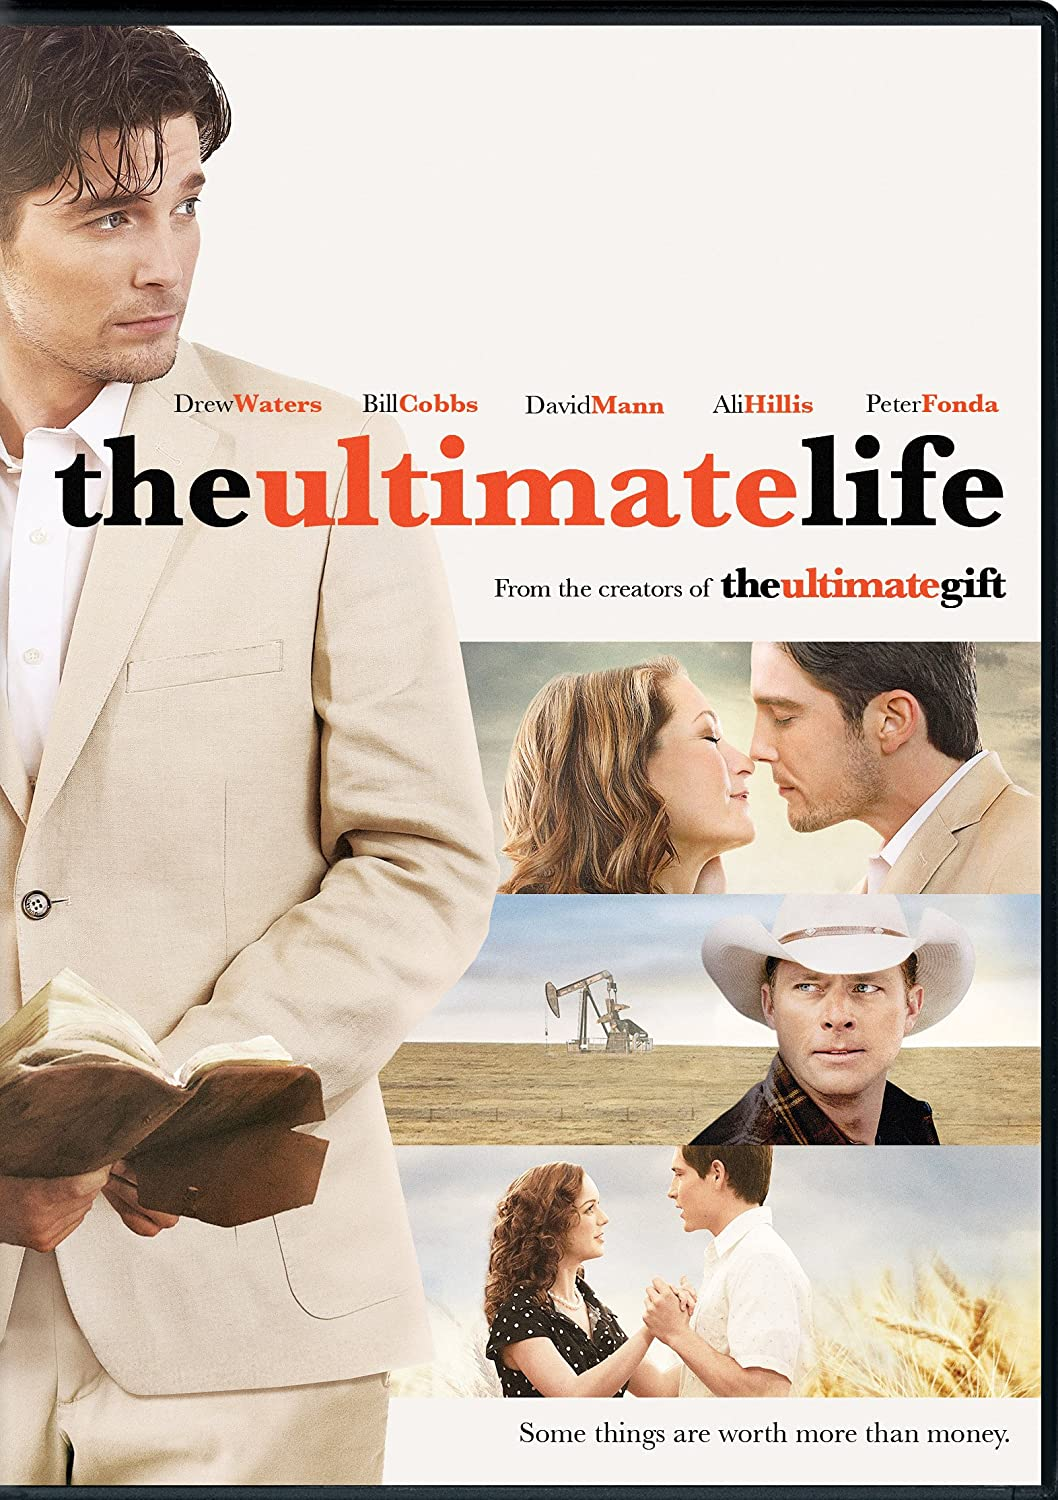 http://www.amazon.com/Ultimate-Life-Blu-ray/dp/B00FL2F2UK/